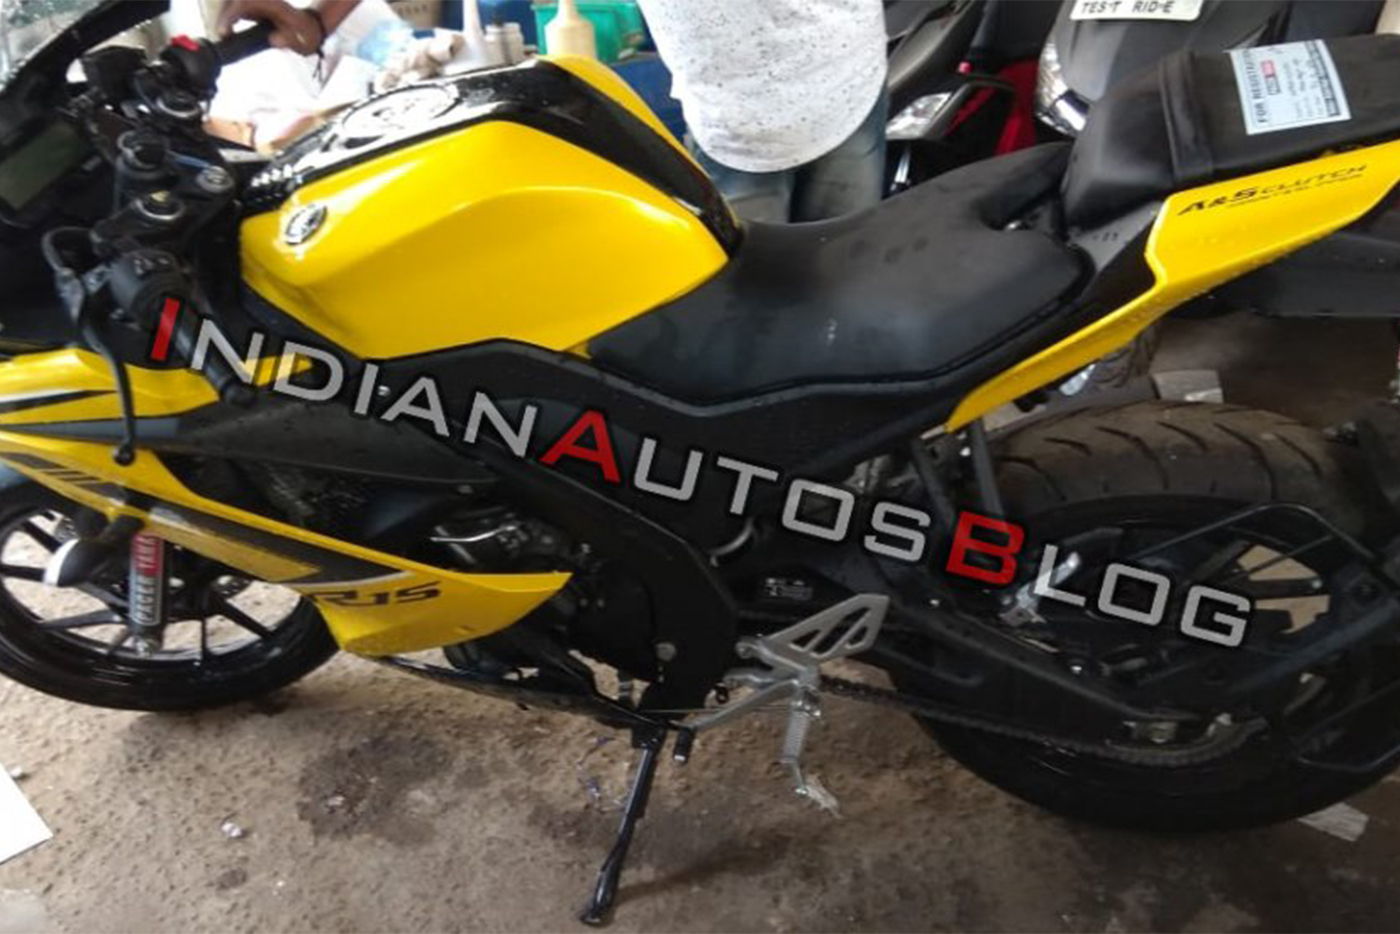 yamaha-r15-v3-0-customised-yellow-colour-left-side-311f-1.jpg